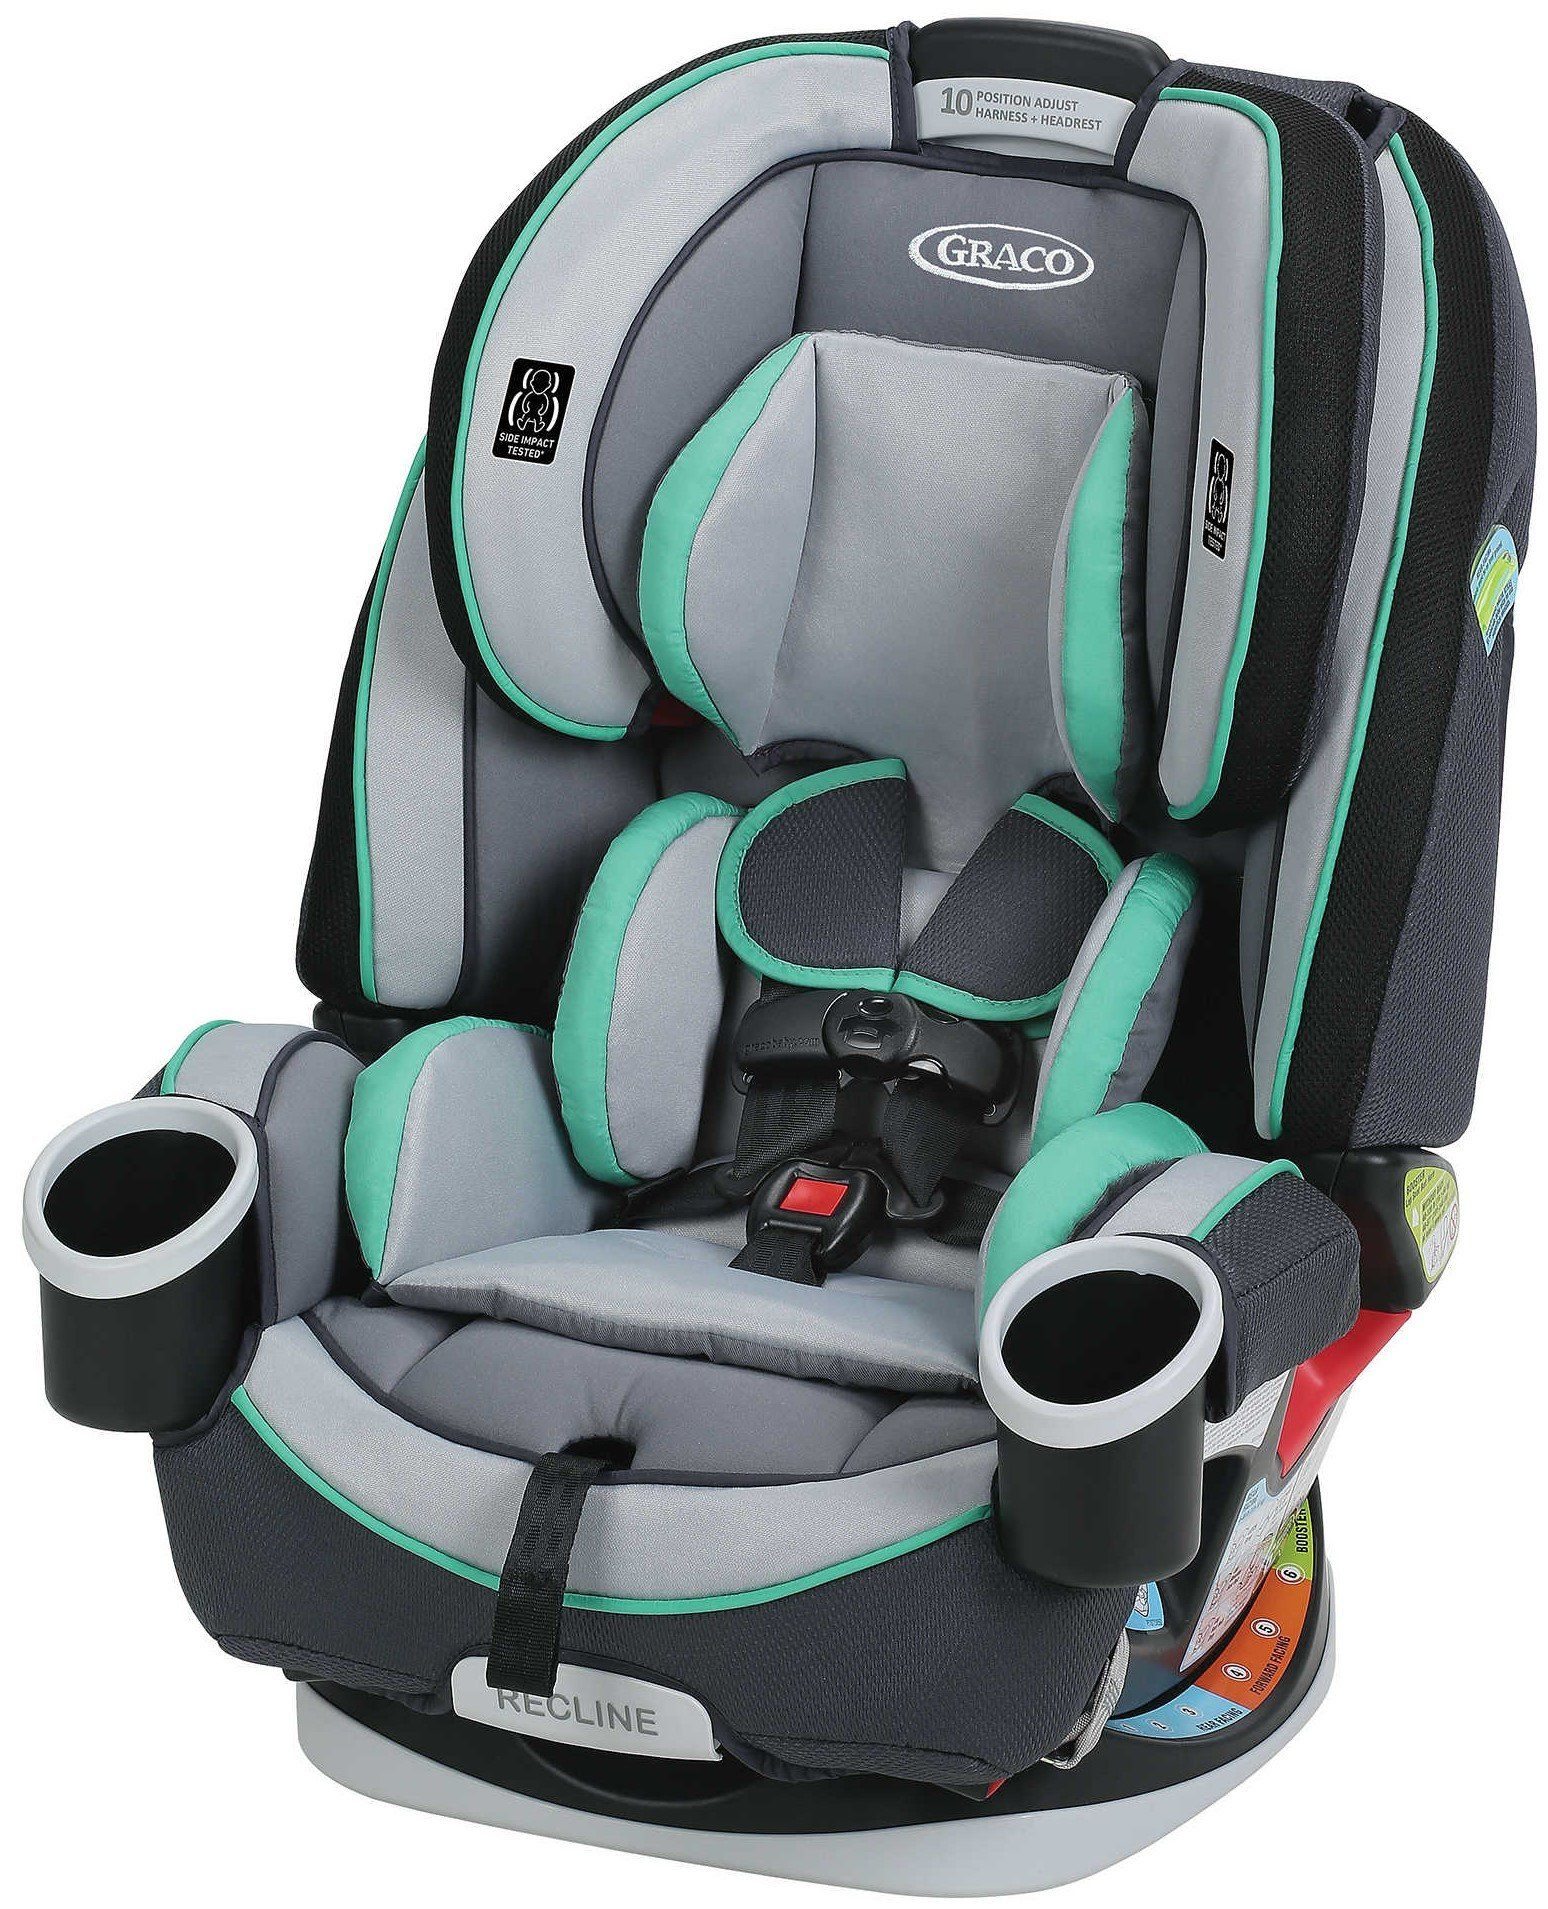 Graco 4ever AllinOne Car Seat (Basin) Best convertible